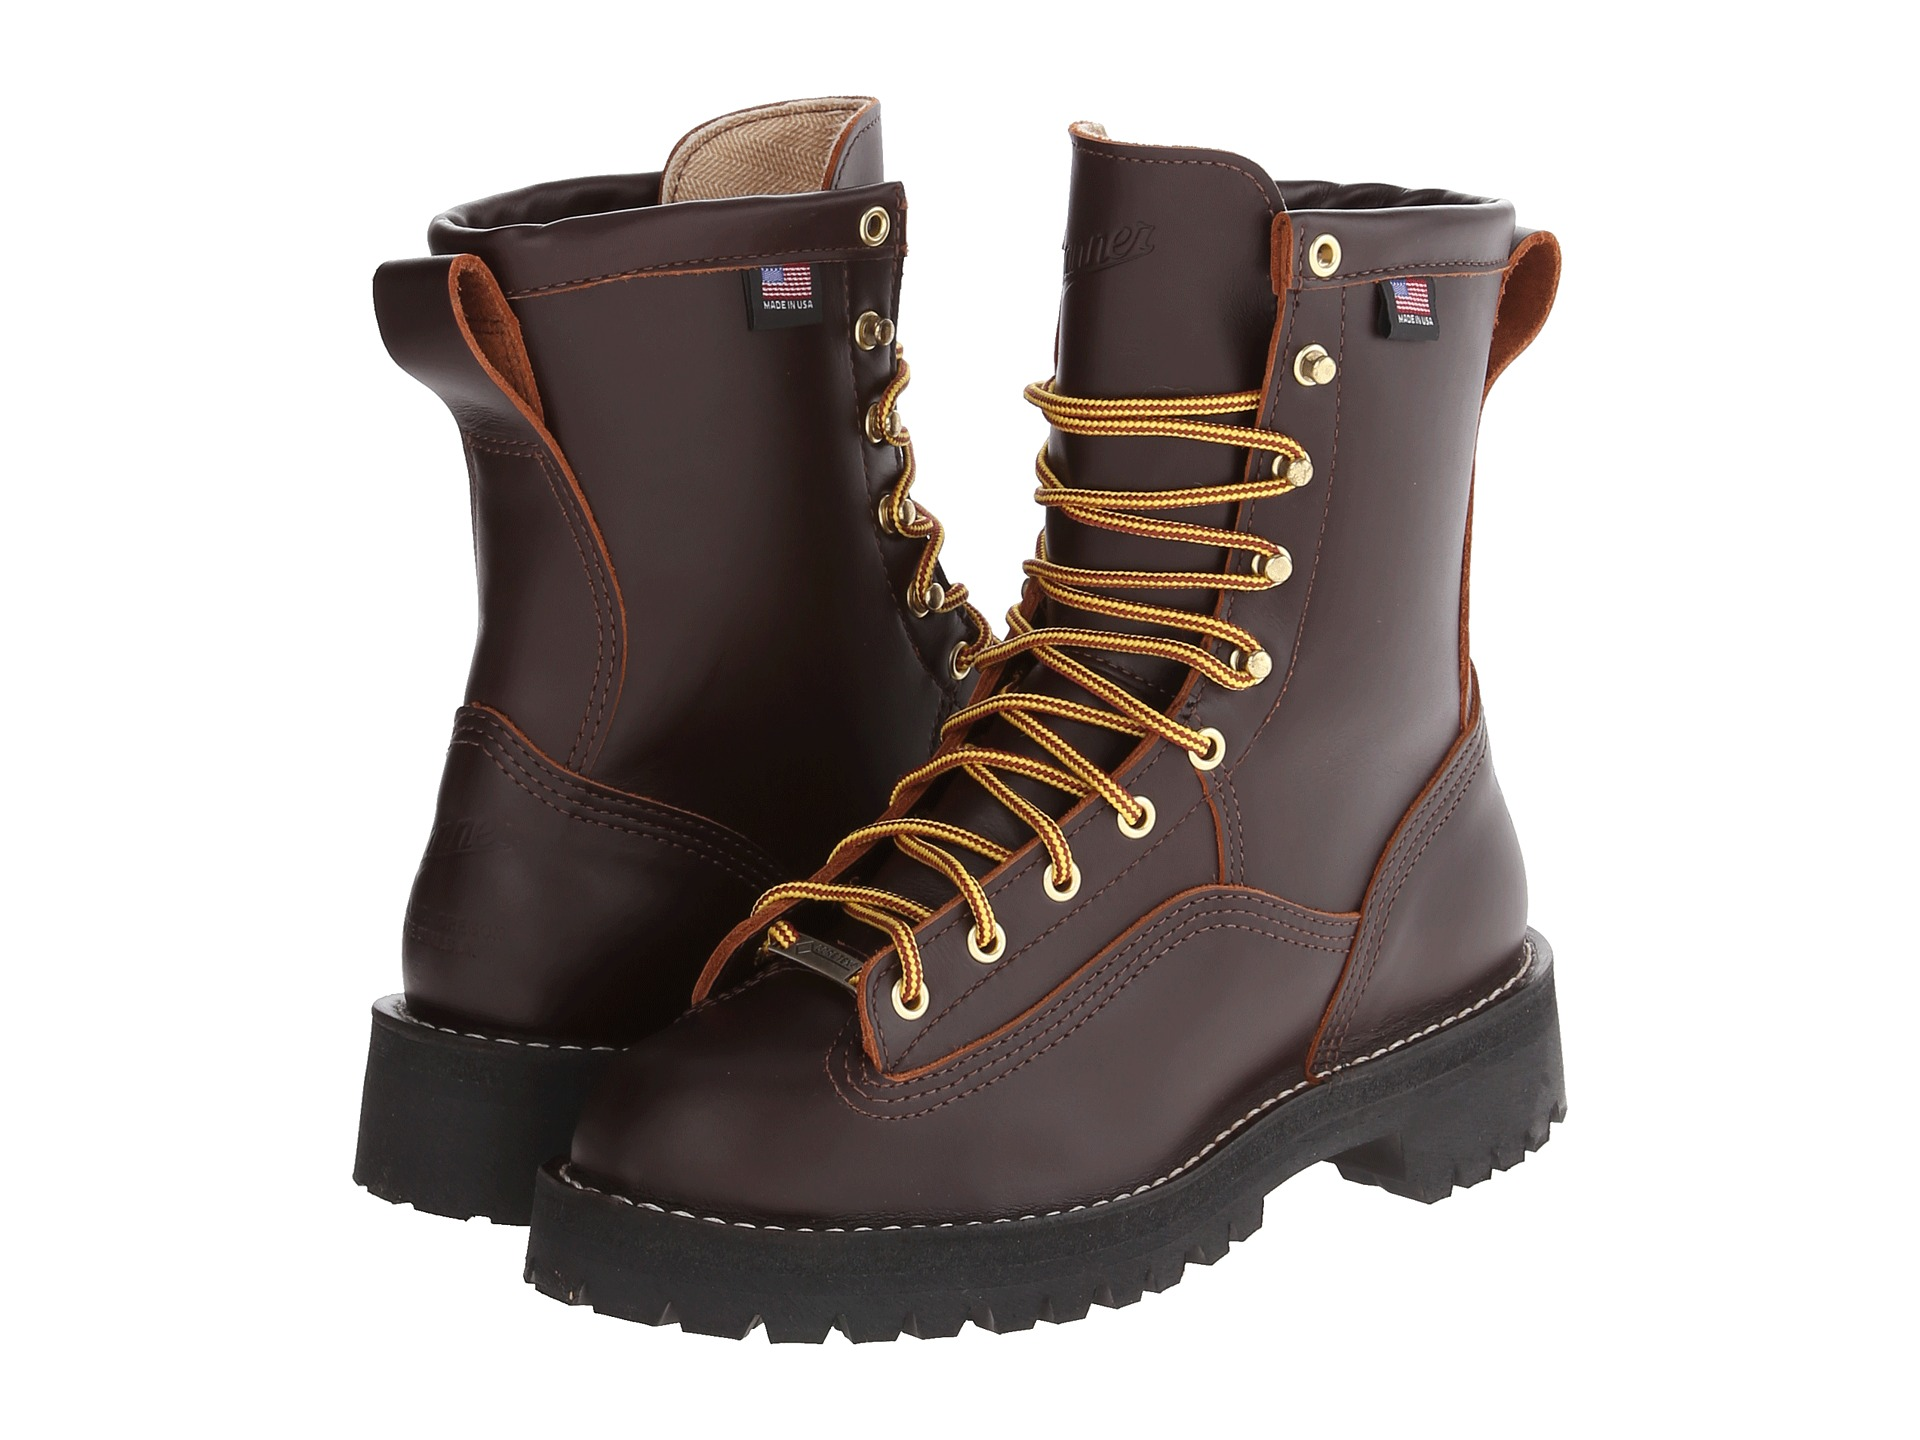 Danner Rain Forest™ 8&quot - Zappos.com Free Shipping BOTH Ways